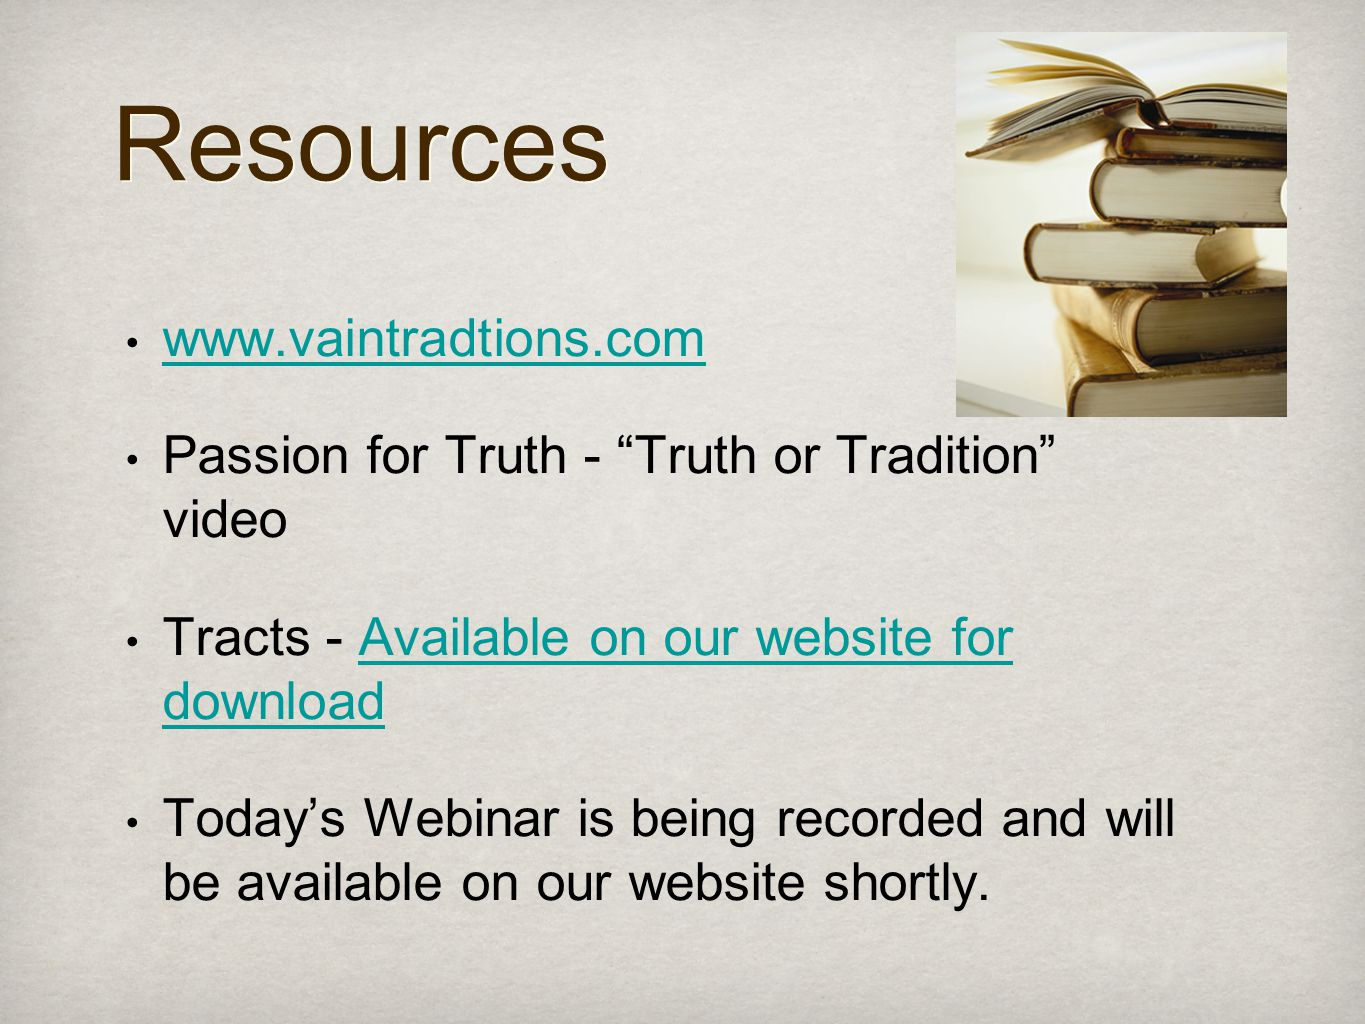 Resources www.vaintradtions.com Passion for Truth - Truth or Tradition video Tracts - Available on our website for downloadAvailable on our website for download Today's Webinar is being recorded and will be available on our website shortly.